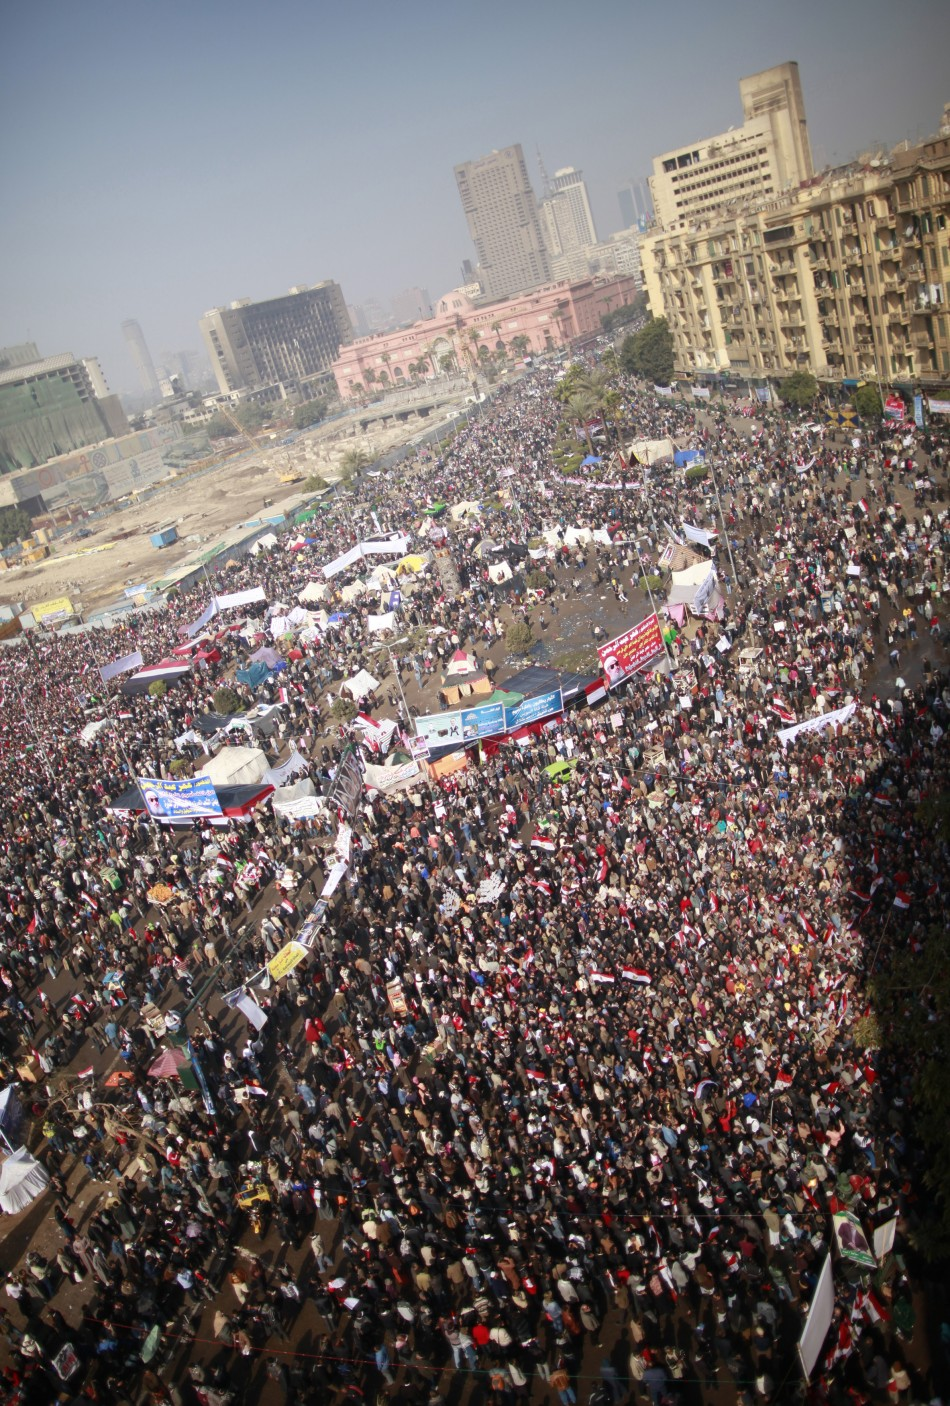 Demonstrators gather at Tahrir Square during a protest marking the first anniversary of Egypts uprising in Cairo